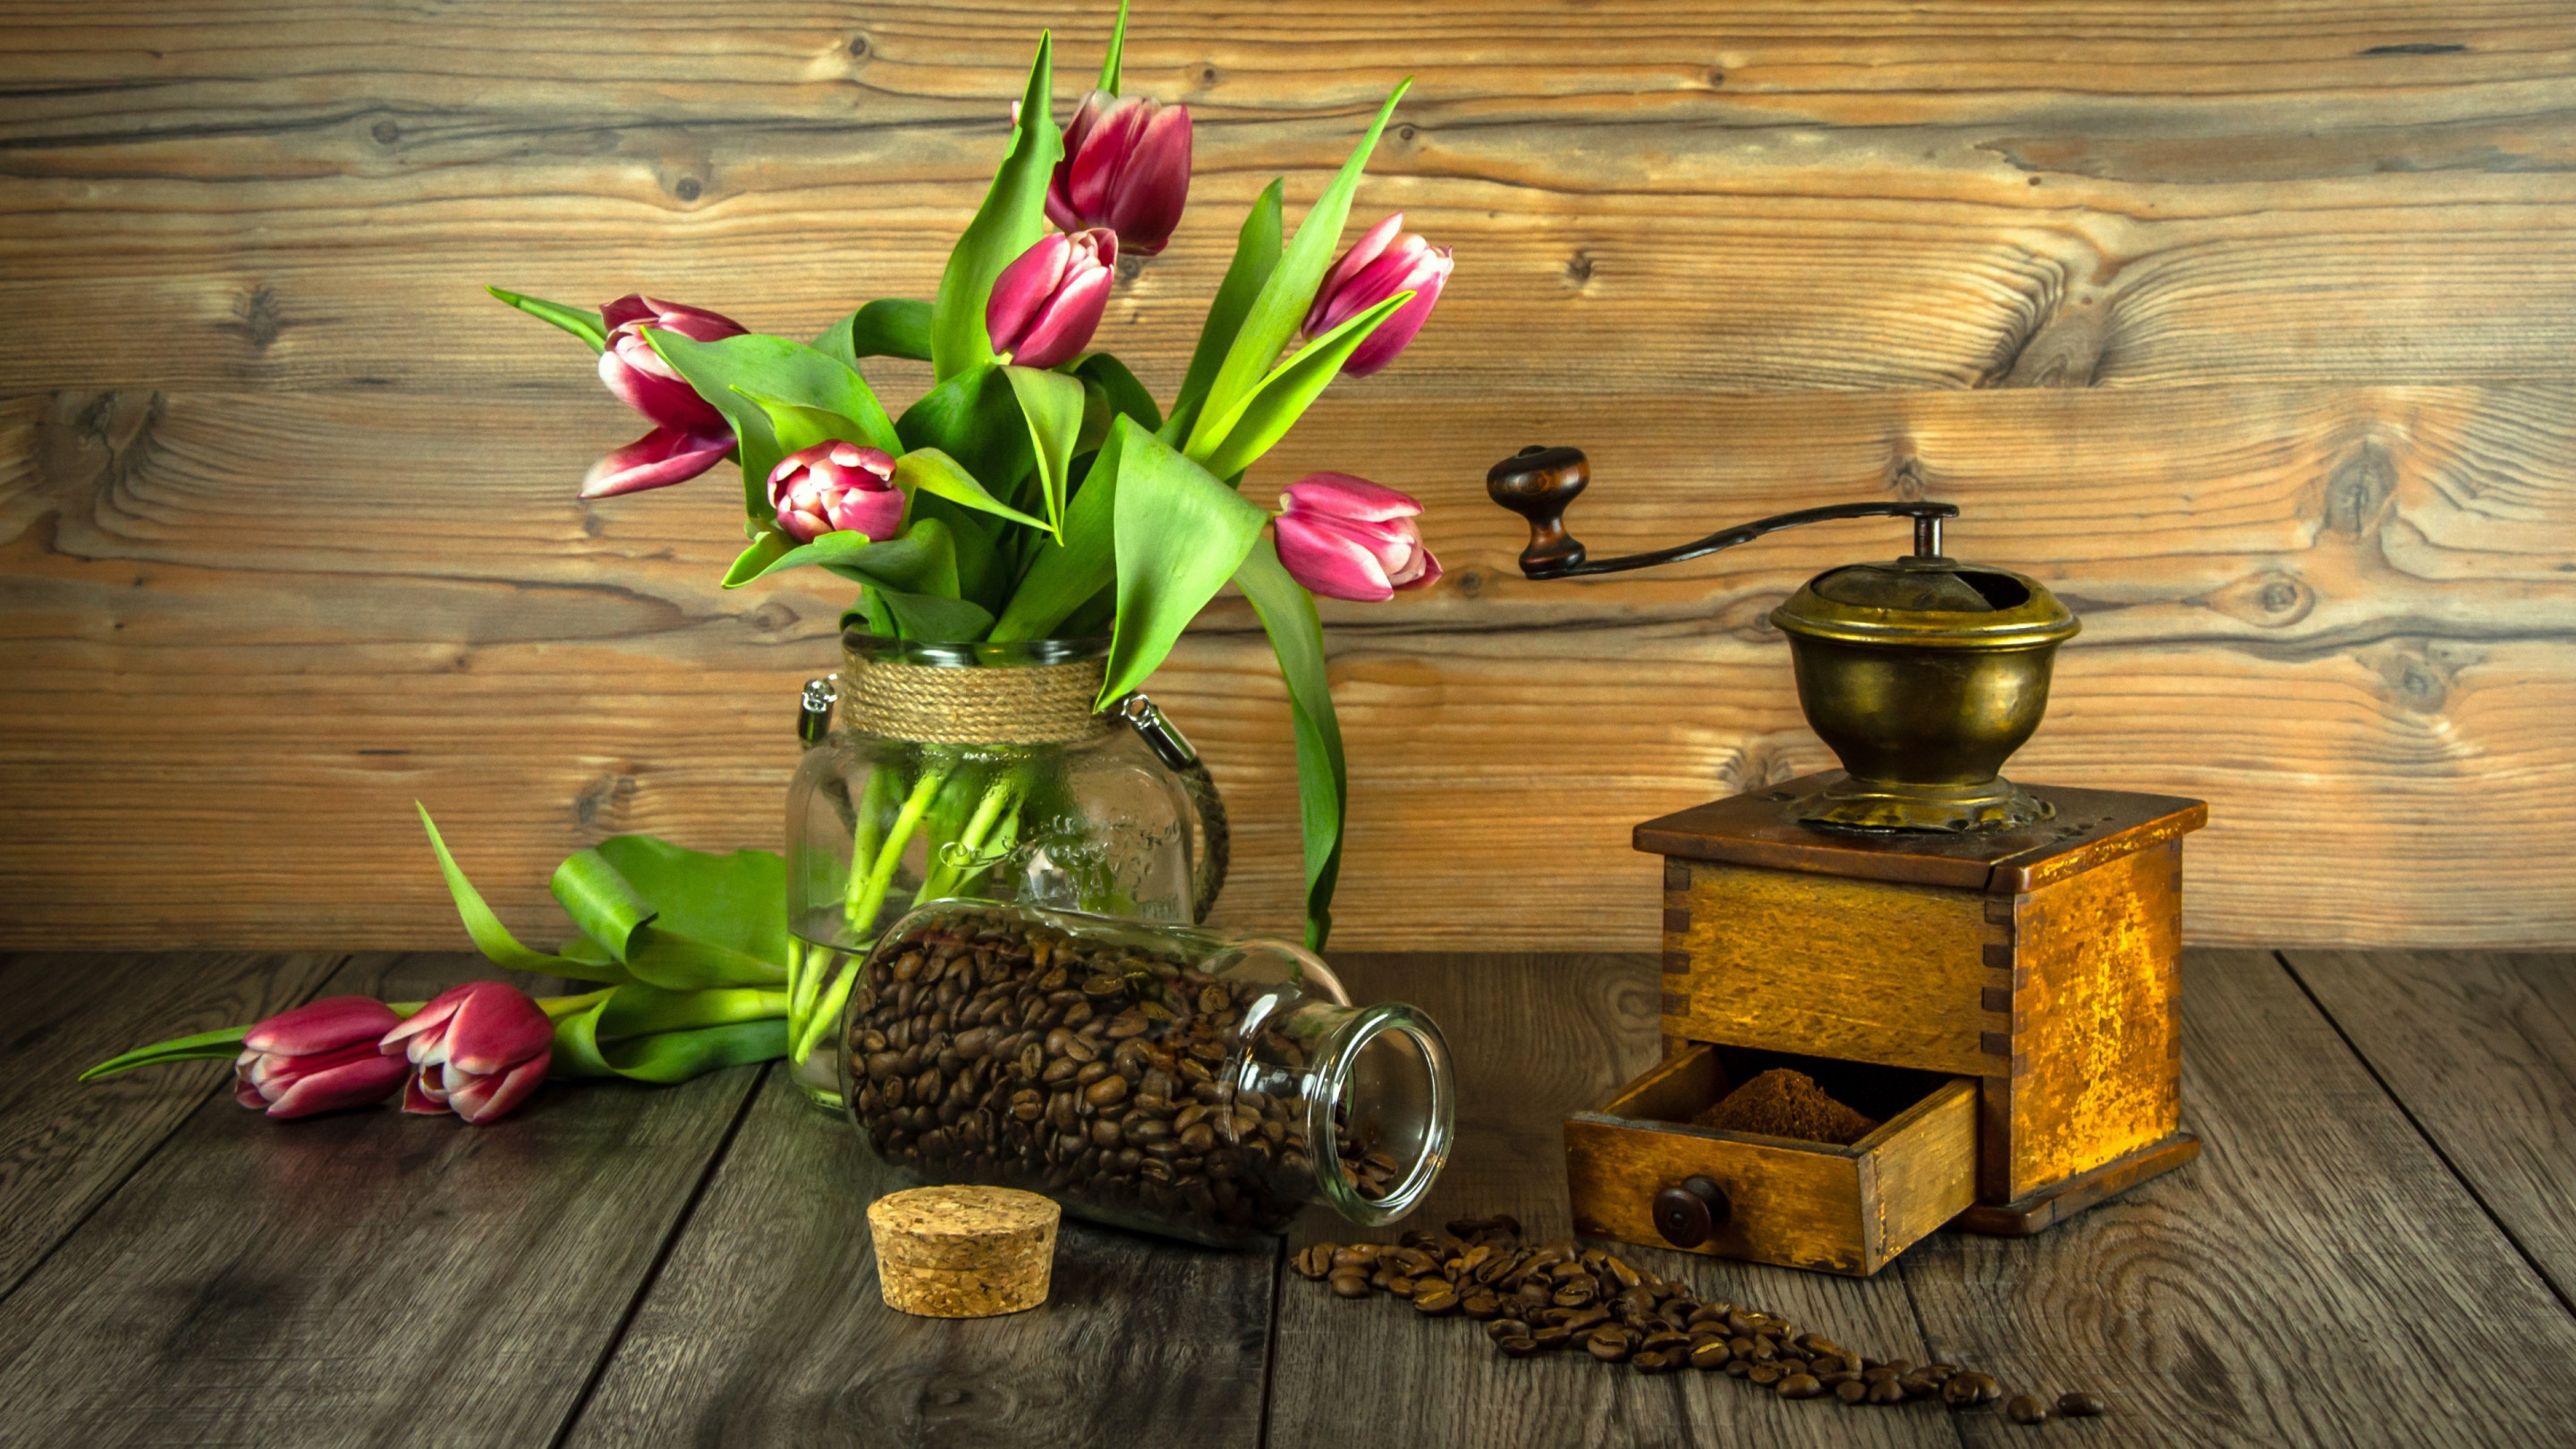 Red tulips and coffee grains | 2880x1620 wallpaper